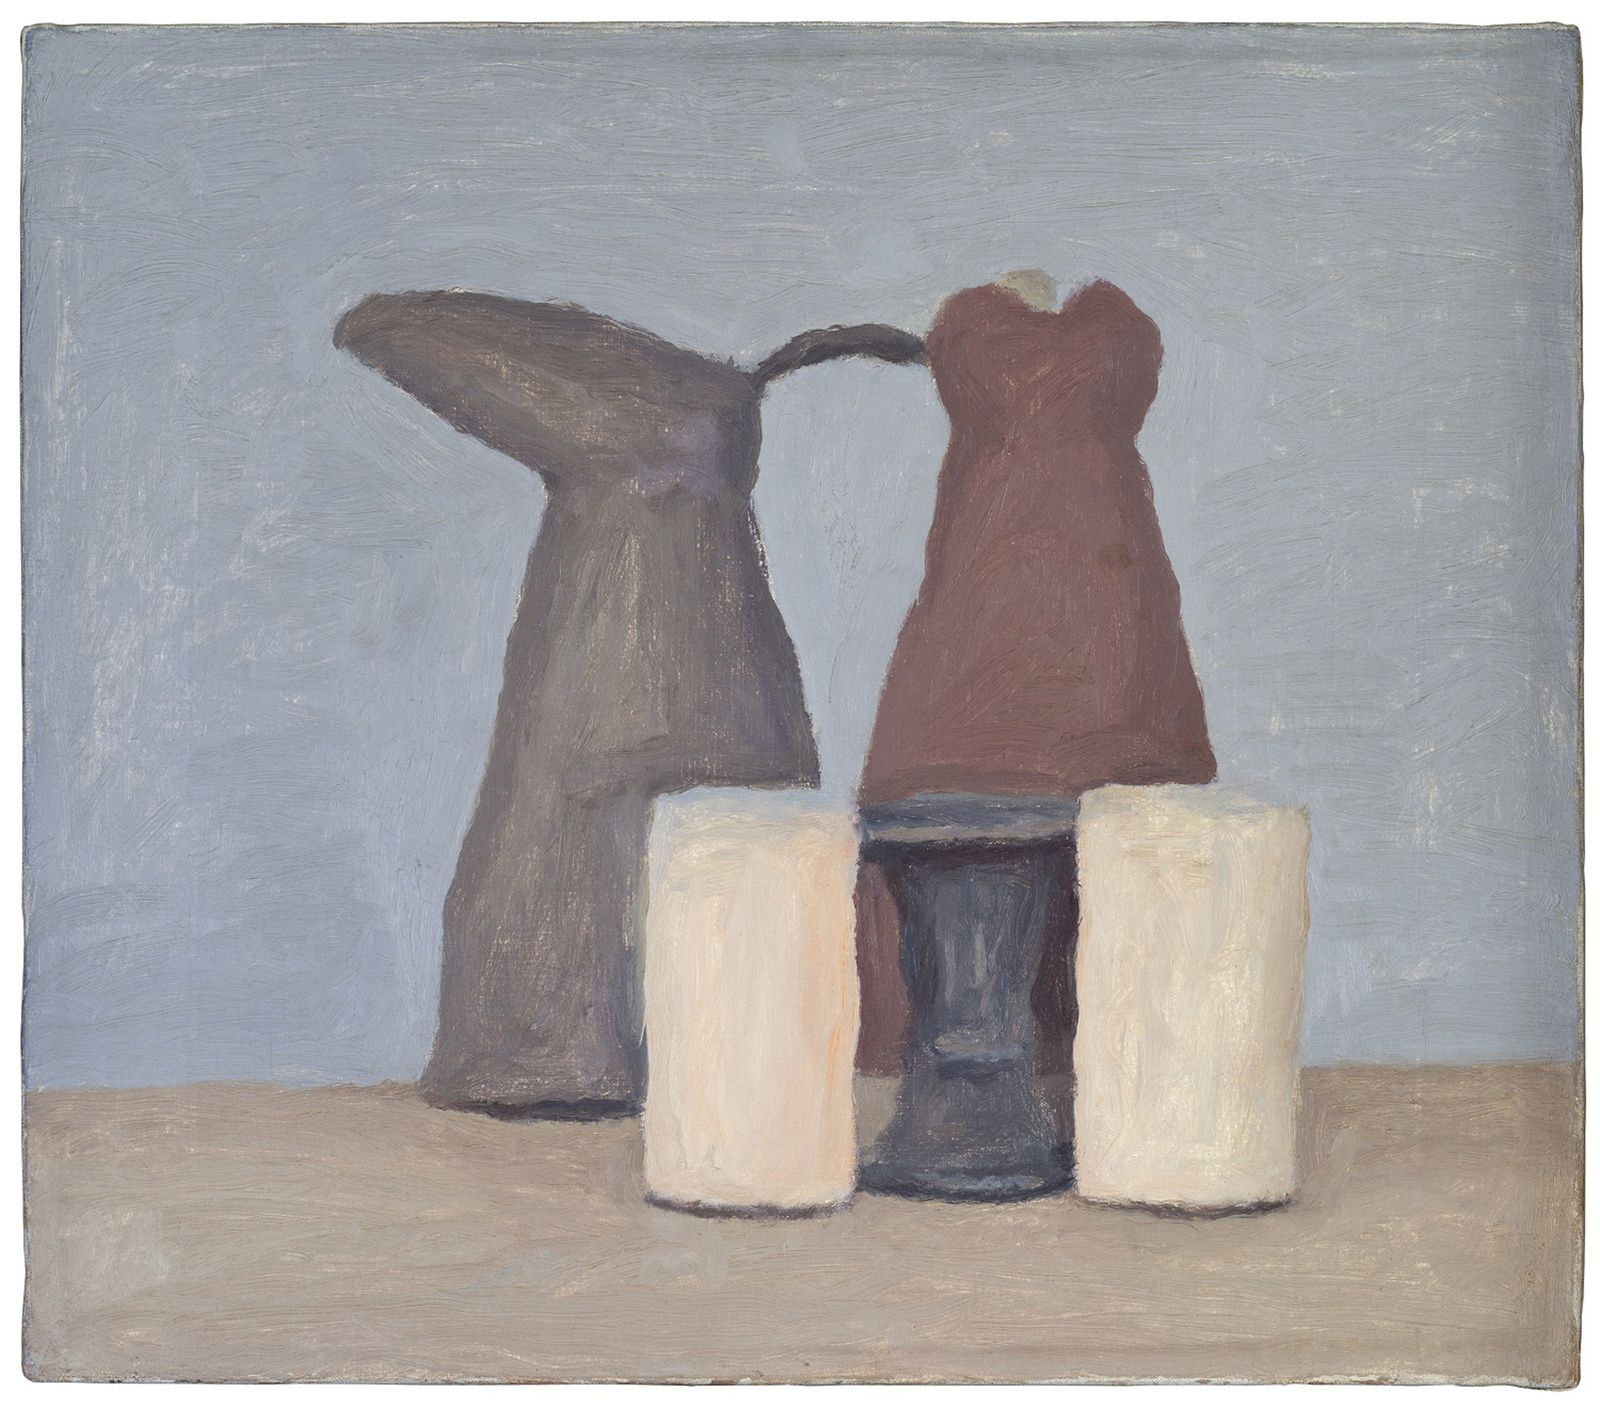 """Natura morta"", 1962 de Giorgio MORANDI - Courtesy Collection Privée"